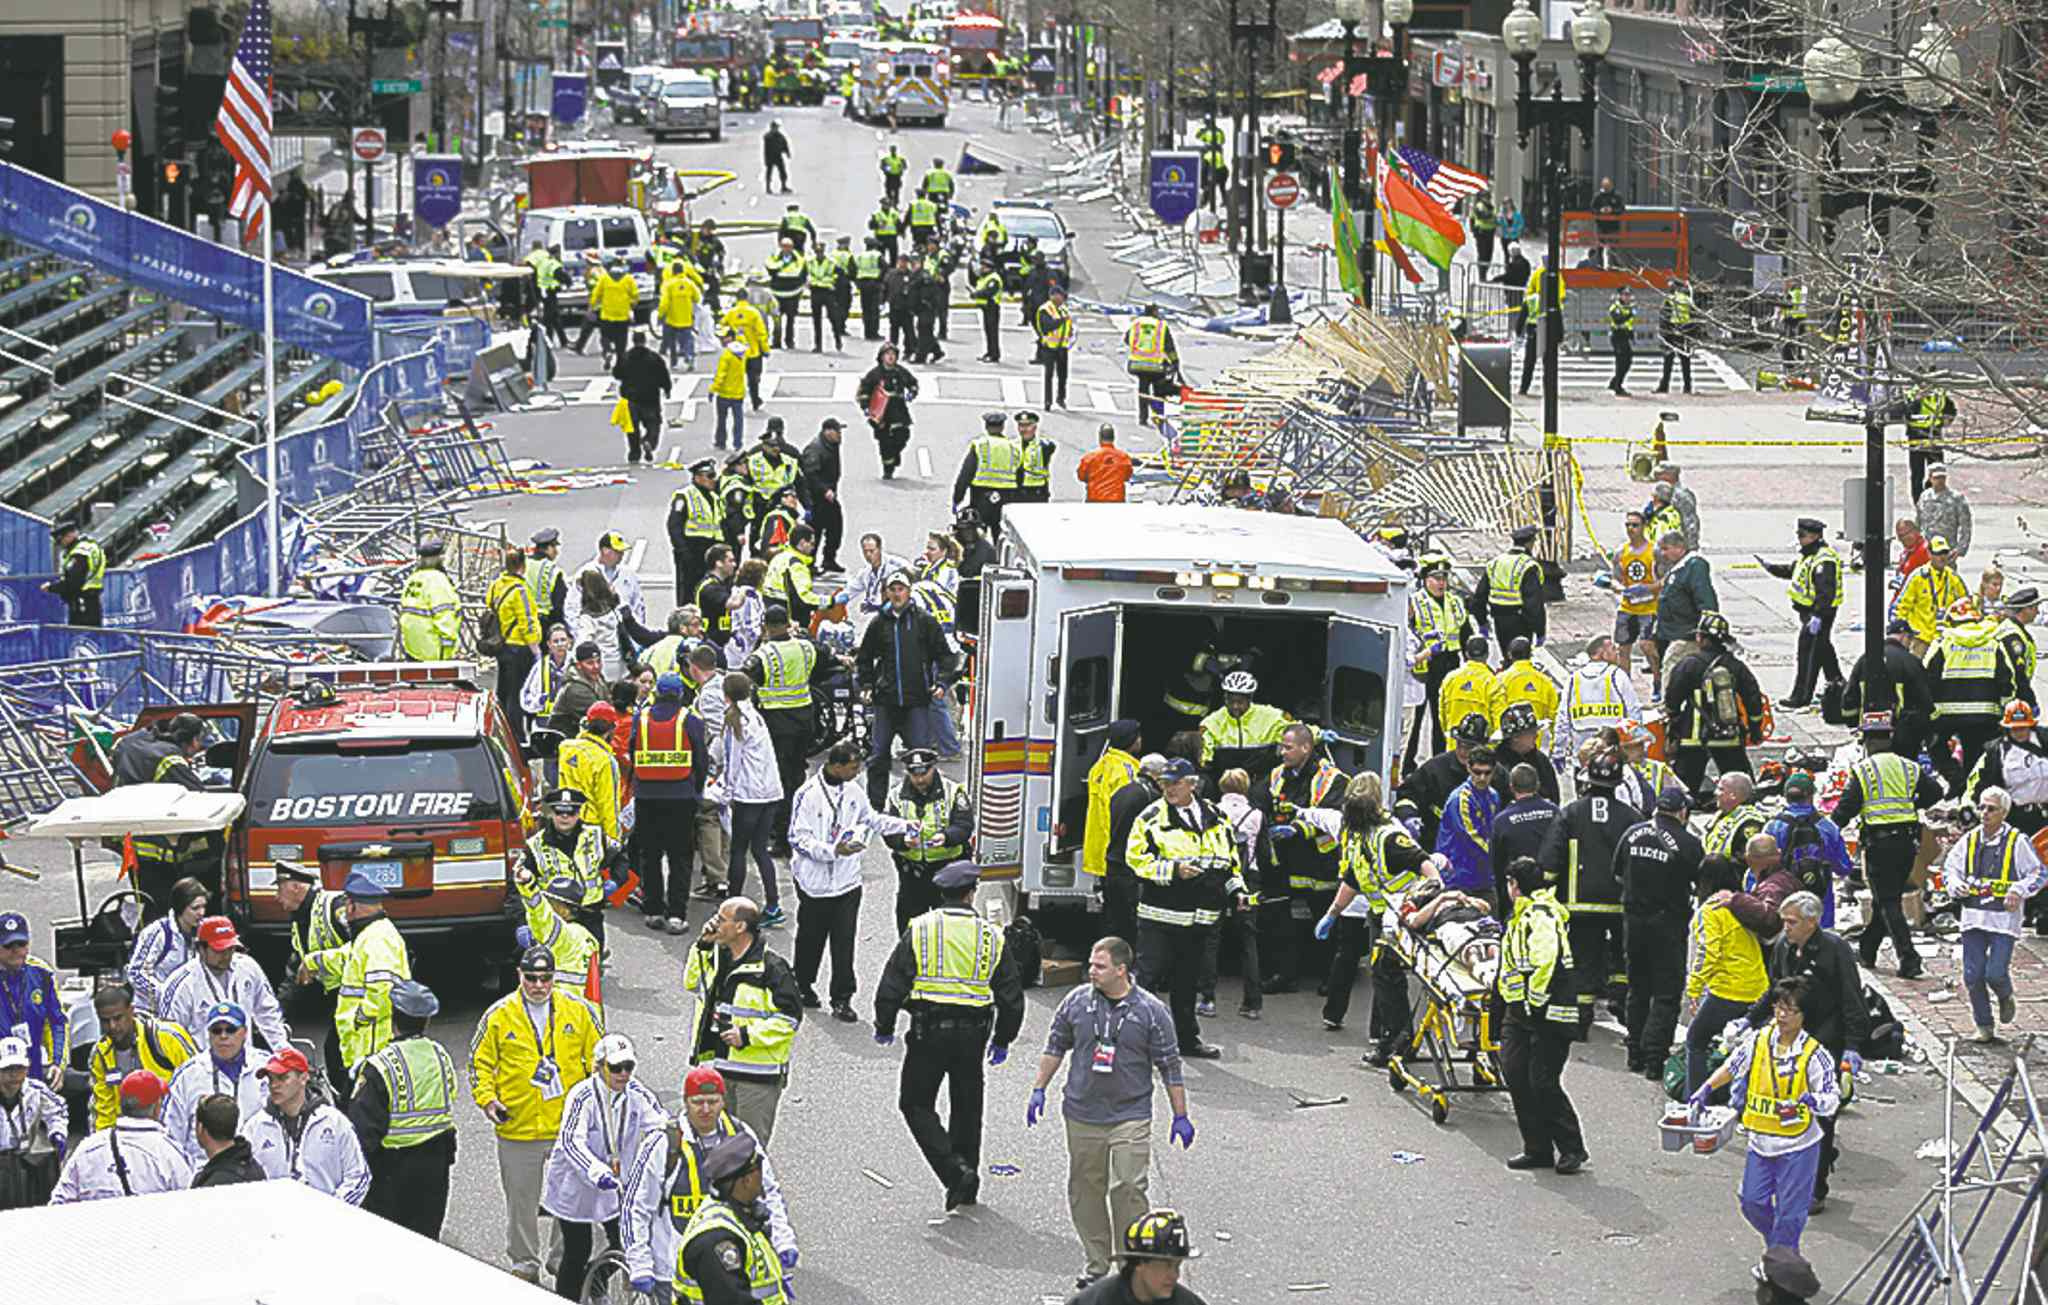 Emergency workers scramble to the aid of bombing victims near the finish line in 2013.